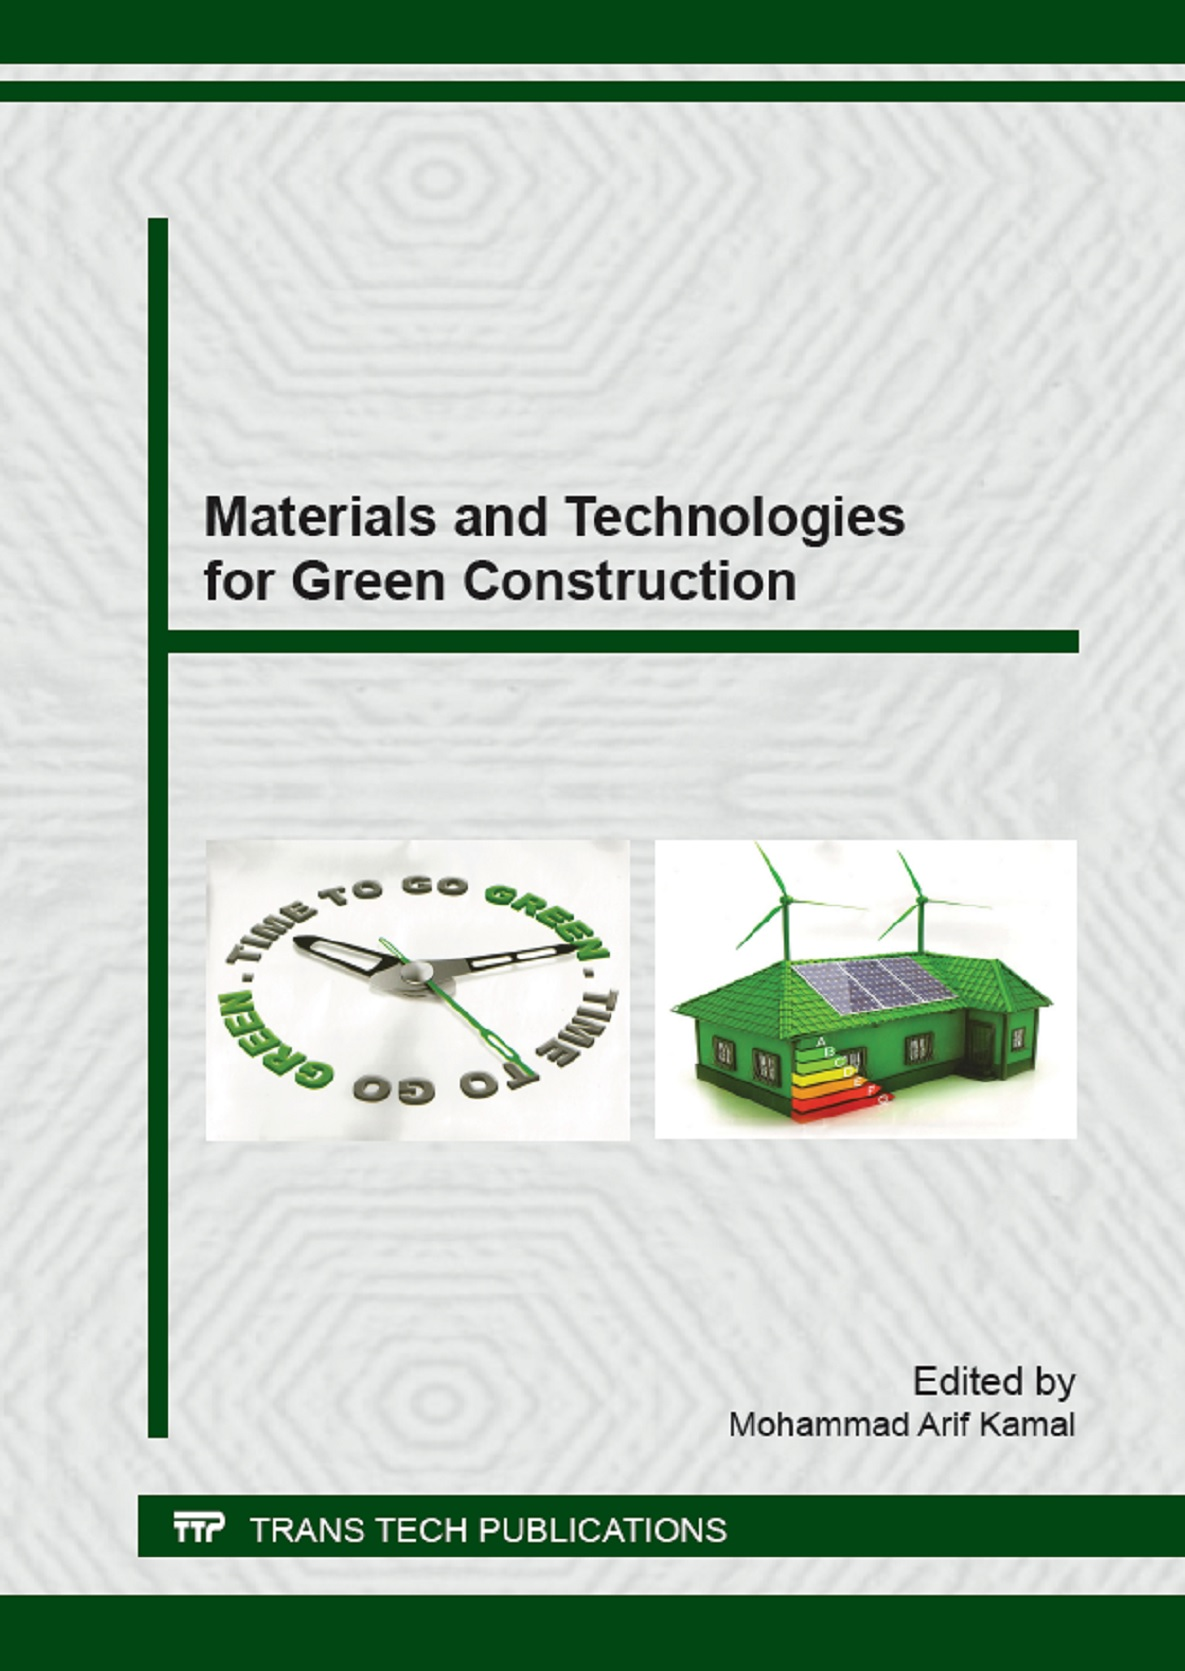 Materials and Technologies for Green Construction